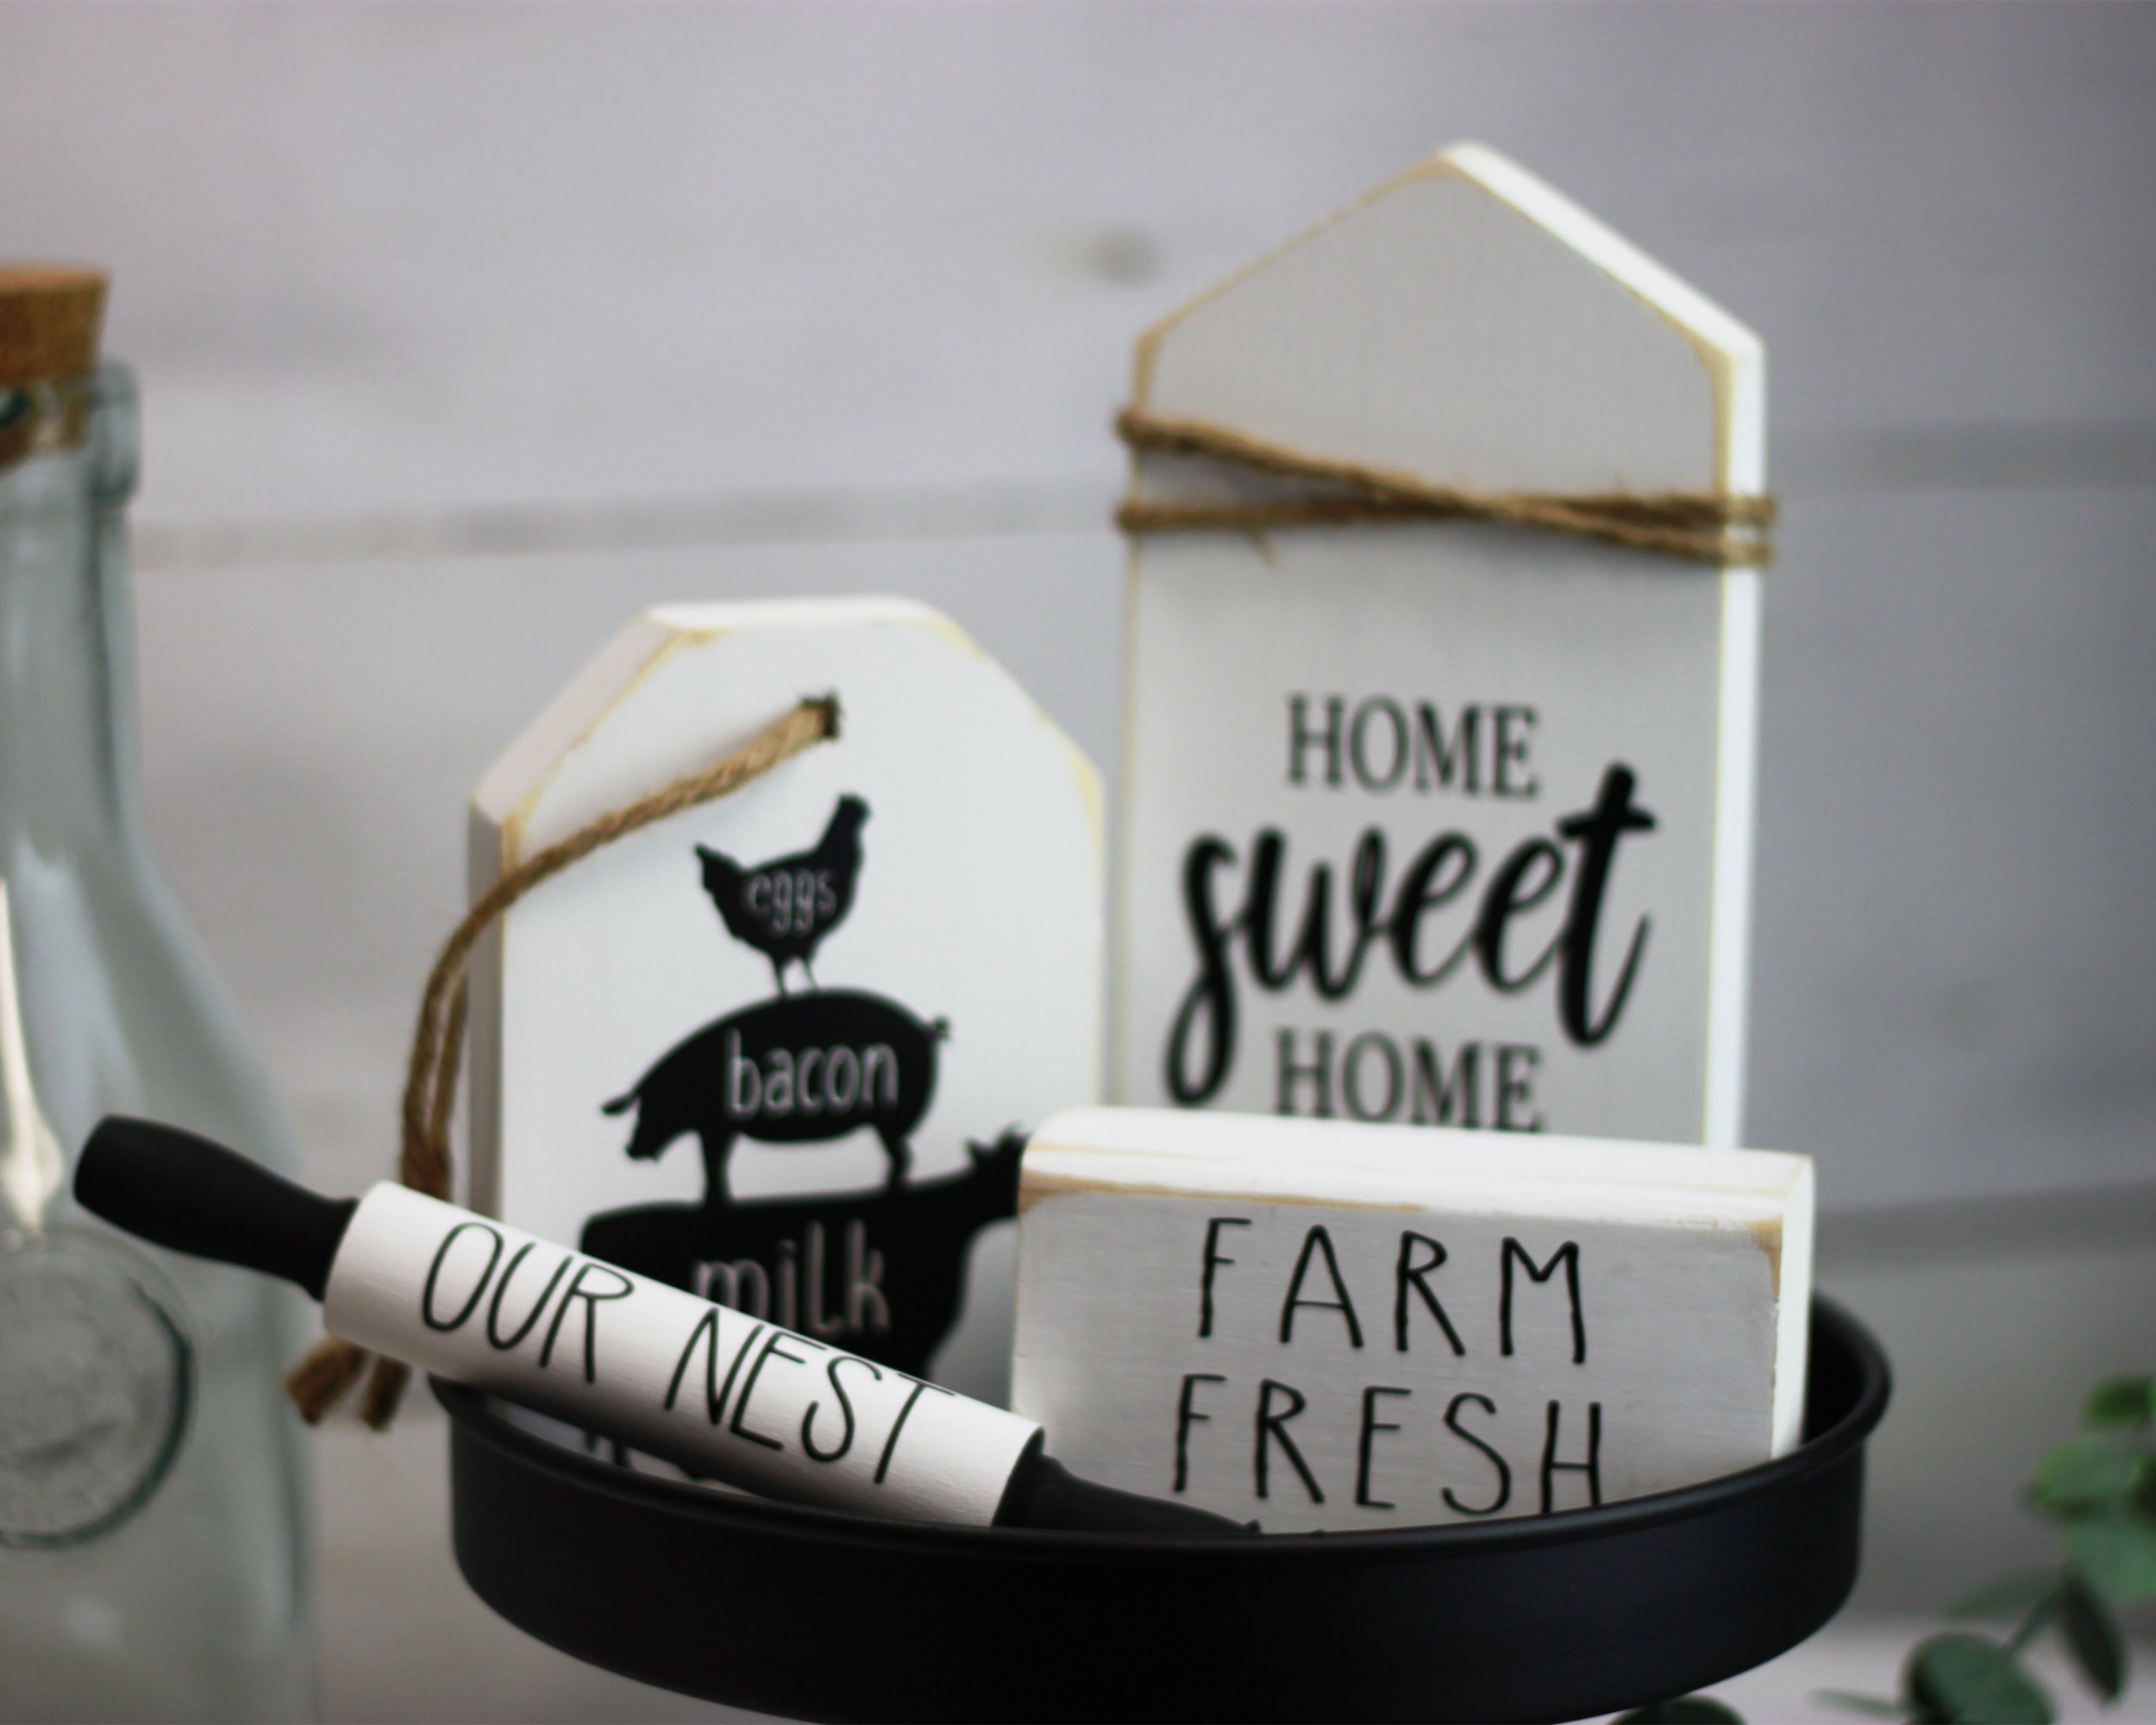 Tiered tray signs for rustic home decor. Classic style mini wood signs in white and black. Sign bundle comes with home sweet home, farm animal trio of chicken pig and cow on a rustic wood tag, mini rolling pin our nest, and farm fresh.